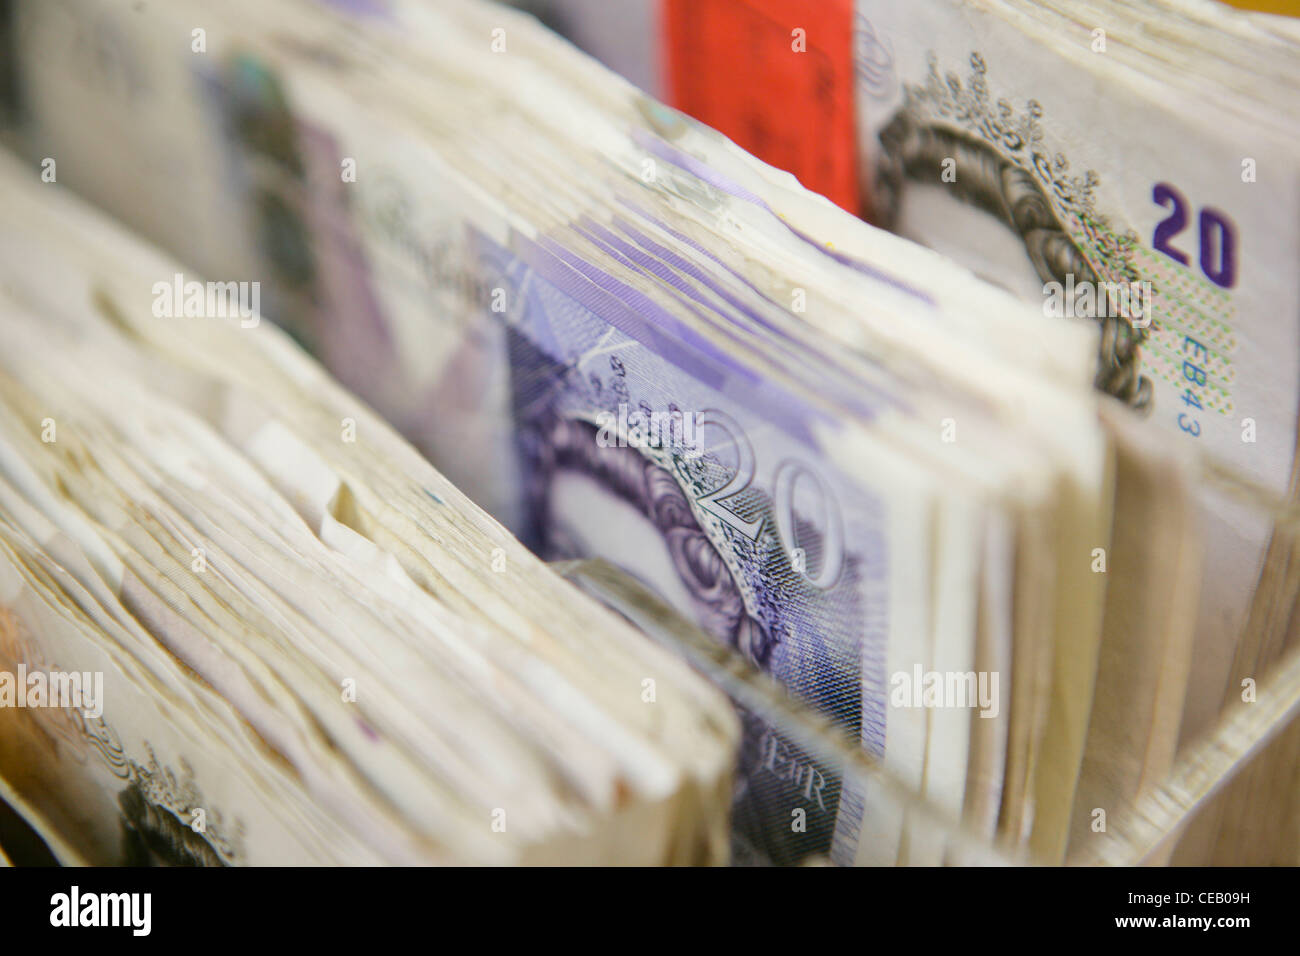 Ten and twenty pound notes in container - Stock Image